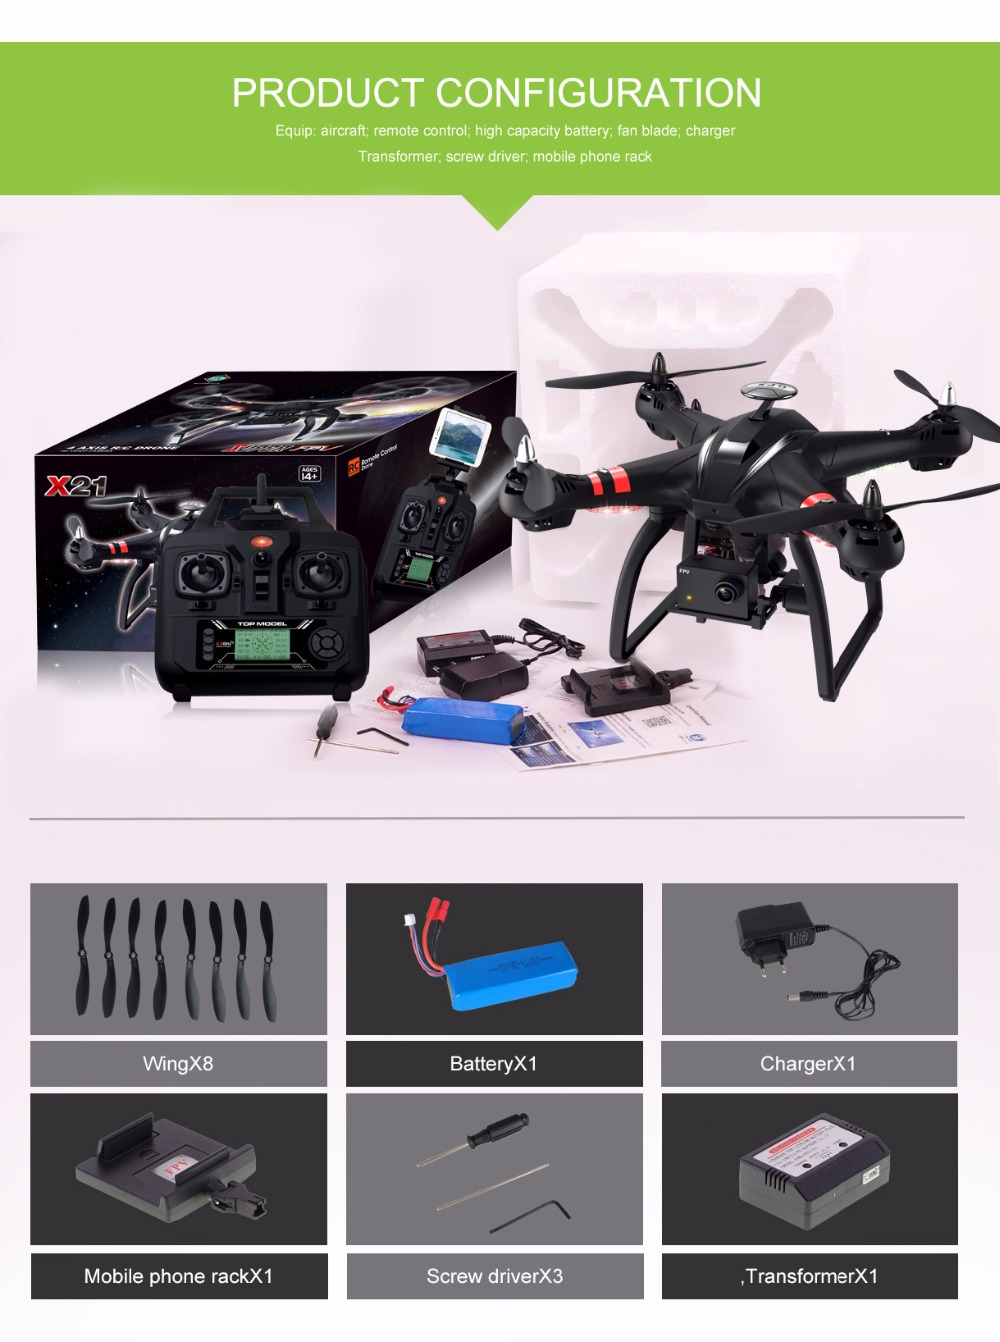 NEW X21 Brushless Double GPS FPV Drone With 1080P WiFi Camera 2.4G 6Axis RC Quadcopter Helicopter VS MJX X102H B2W